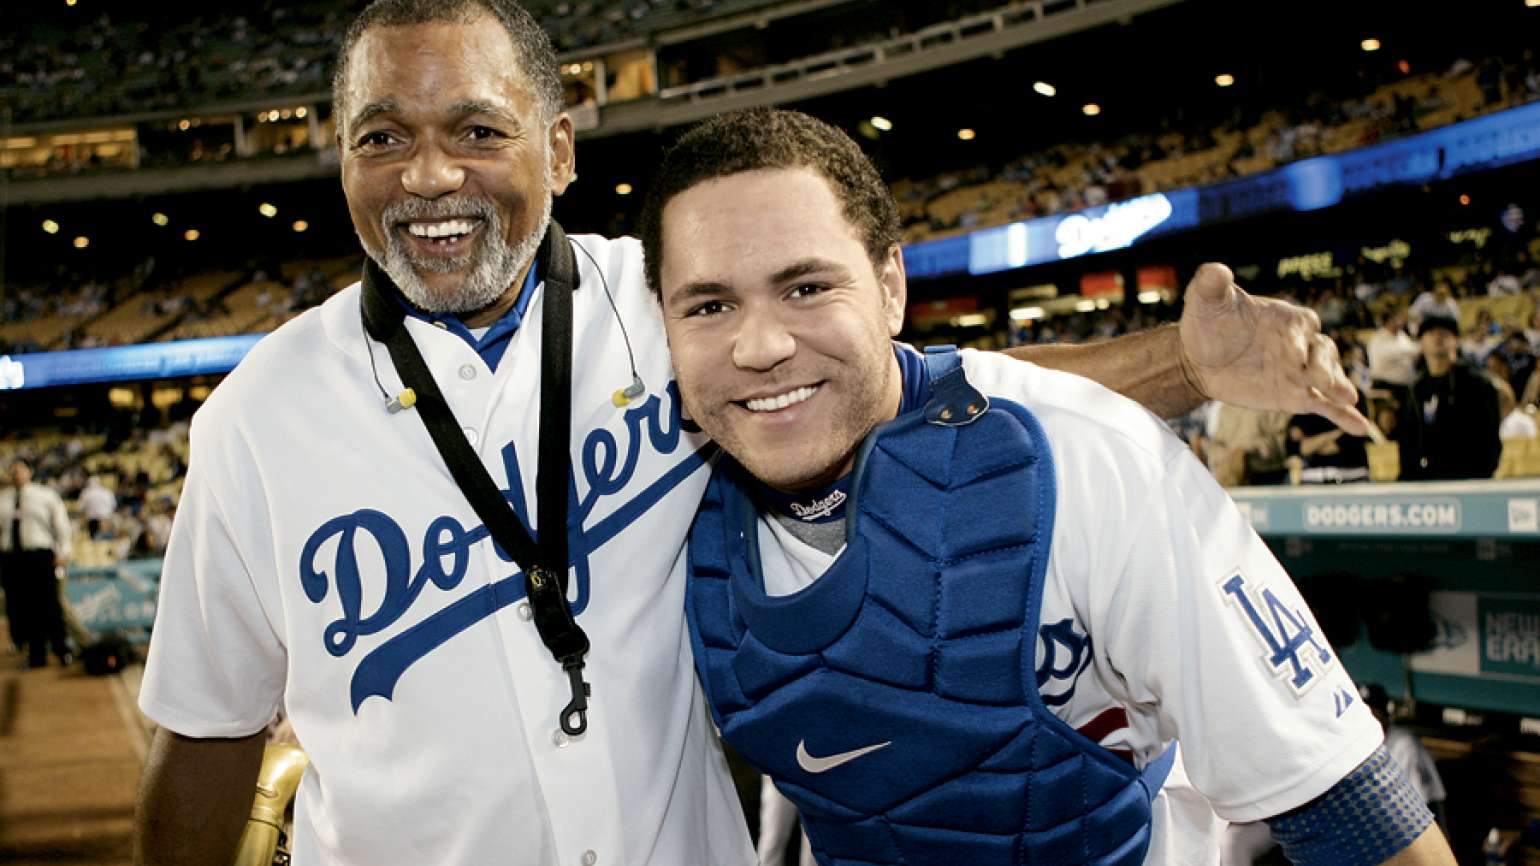 Russell Martin Jr., with his dad who played the national anthem at Dodger Stadium, Guideposts